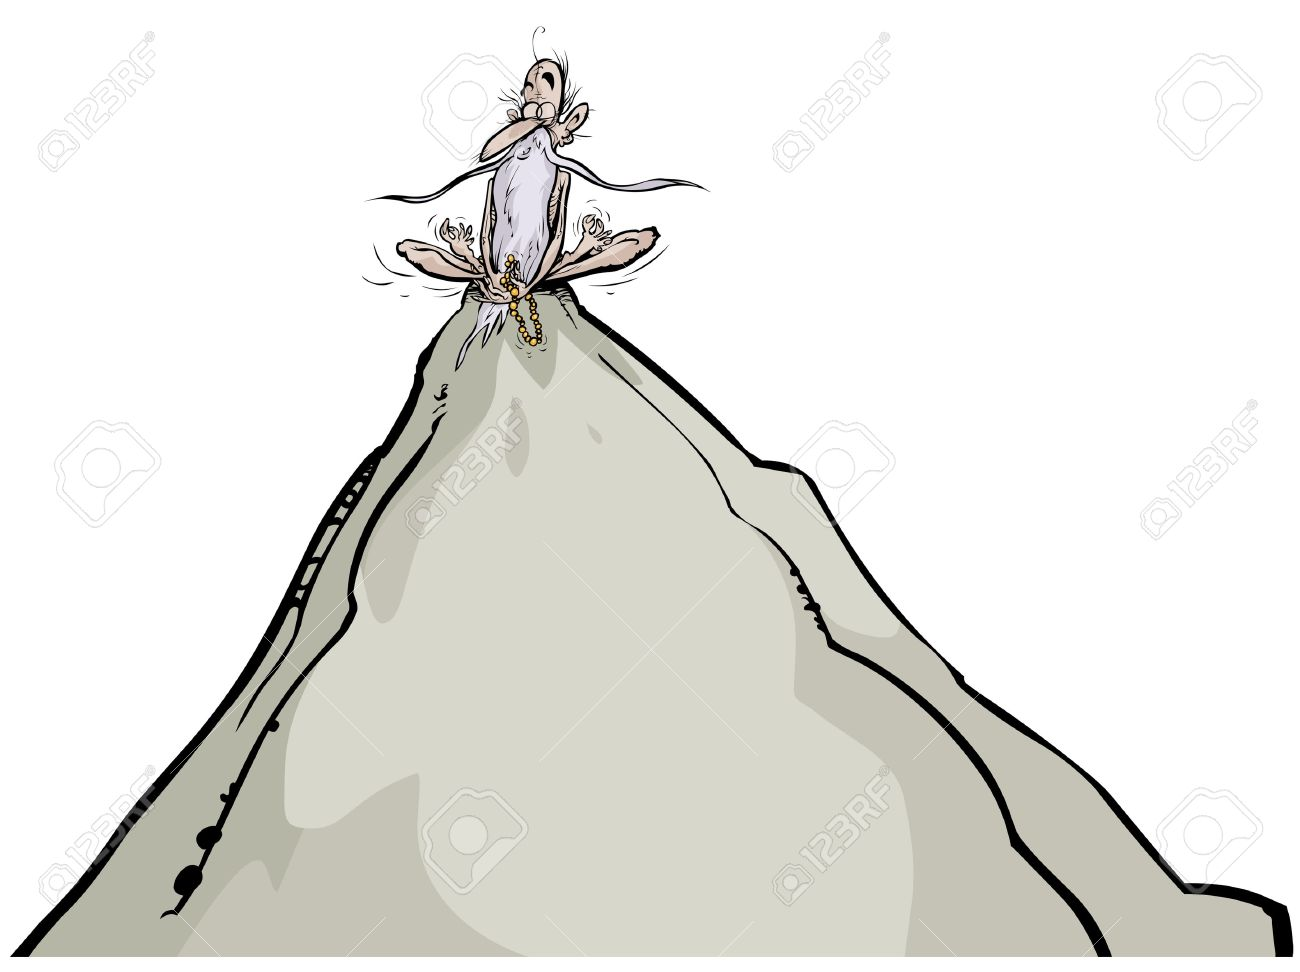 1300x972 Peak Clipart Mountain Sketch